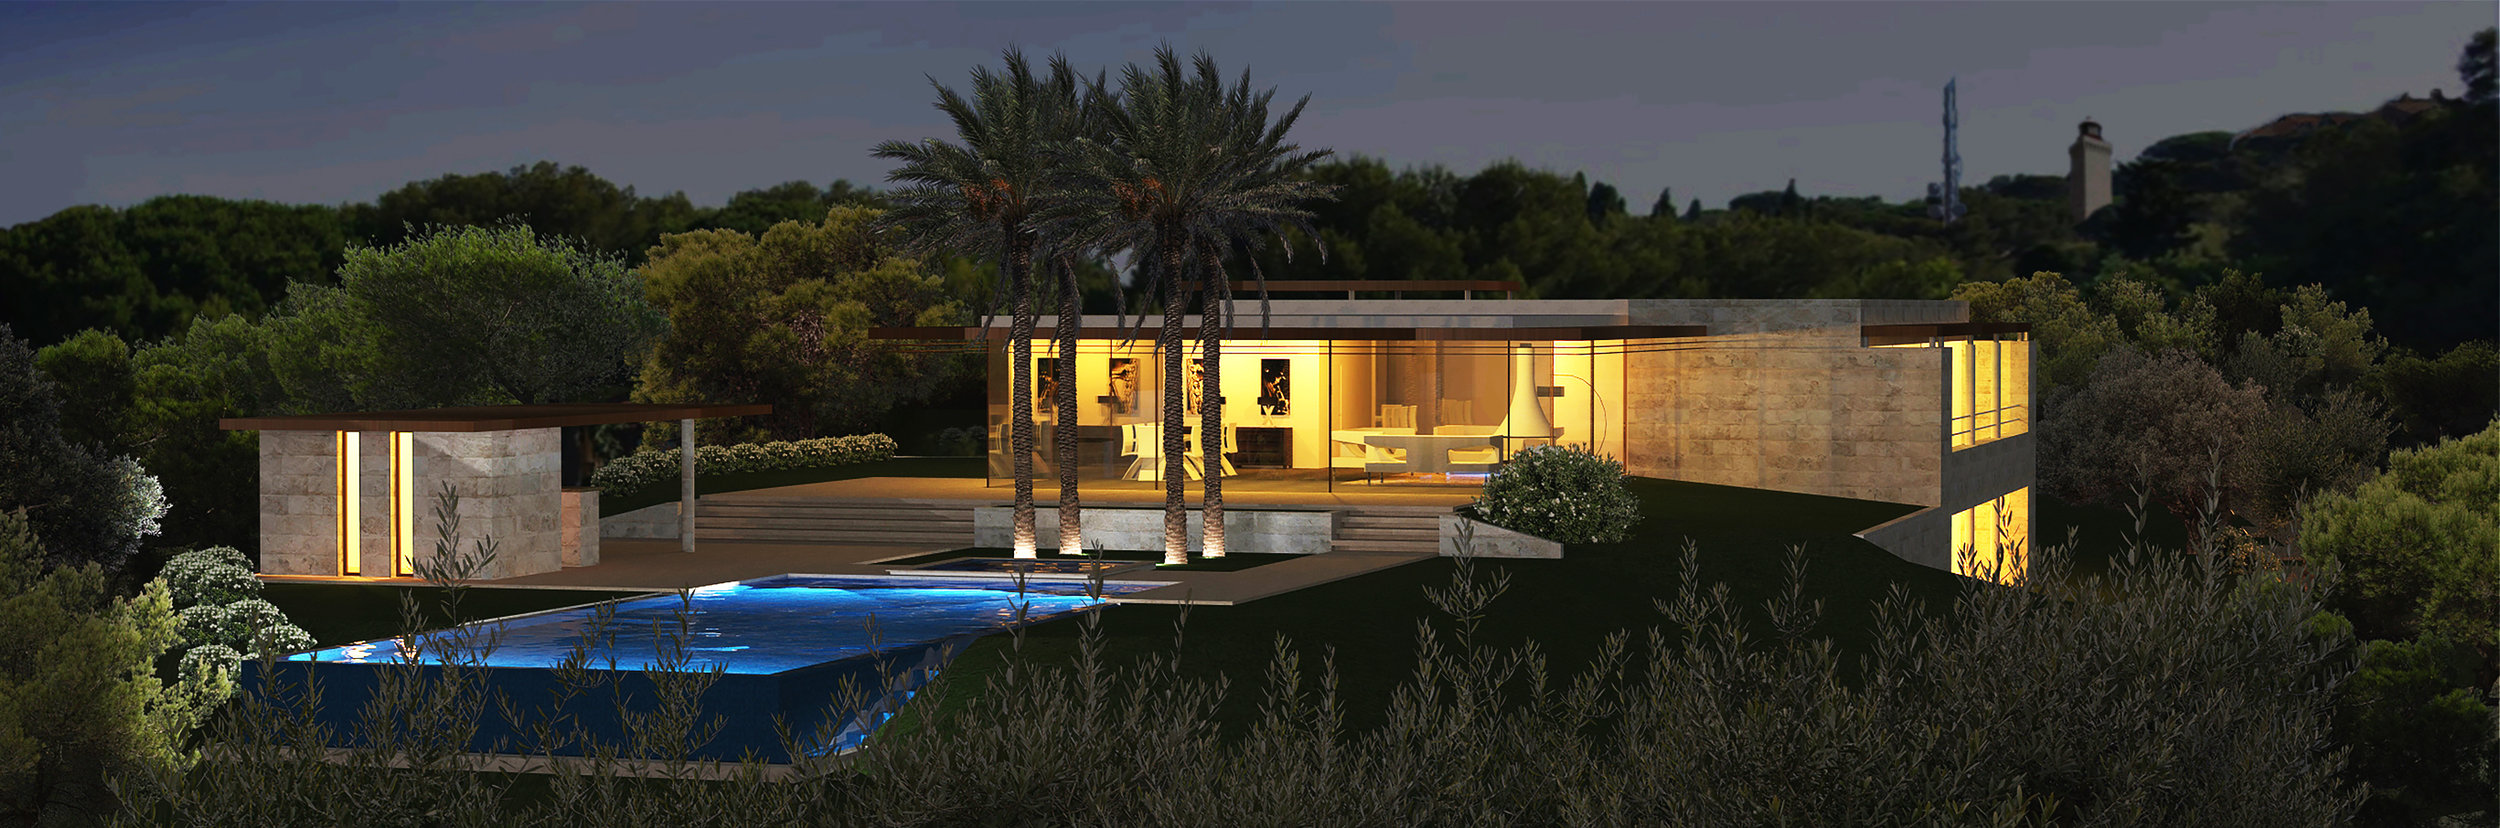 PRIVATE RESIDENCE IN ANTIBES - FR